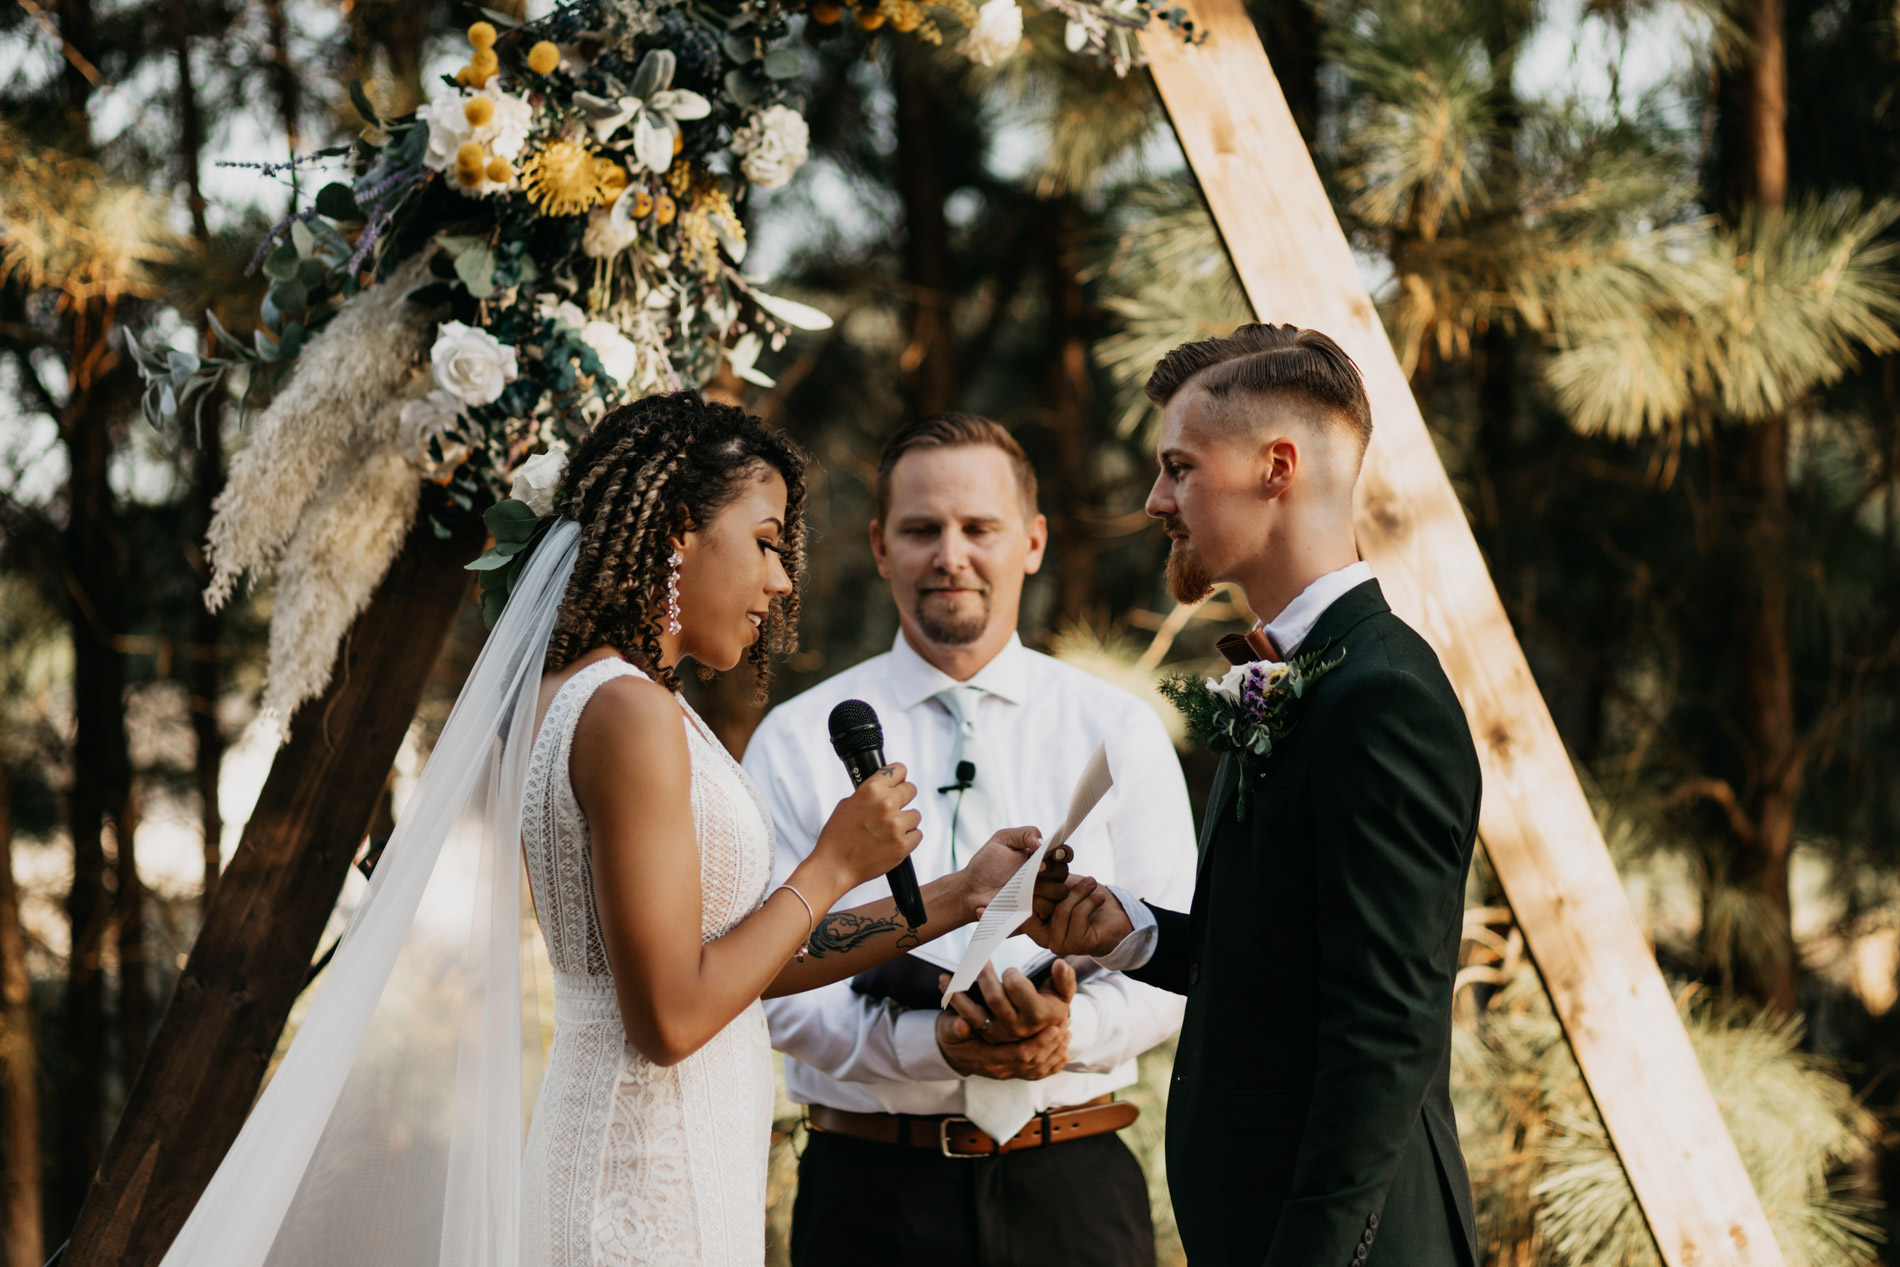 Bride reading vows to groom on wedding day